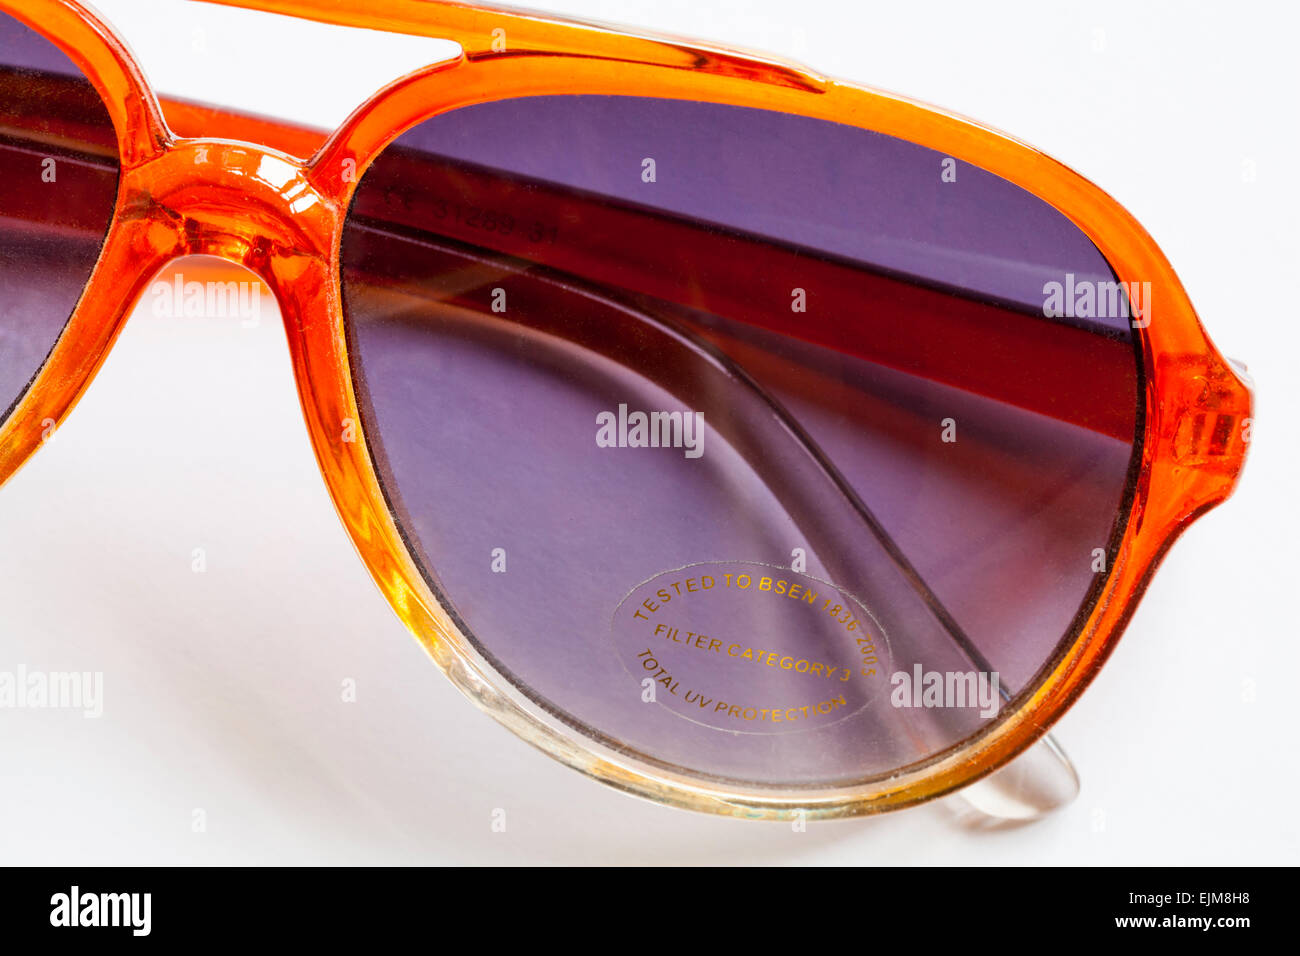 Sticker on sunglasses - tested to BSEN 1836 2005 Filter Category 3 Total UV Protection - Stock Image